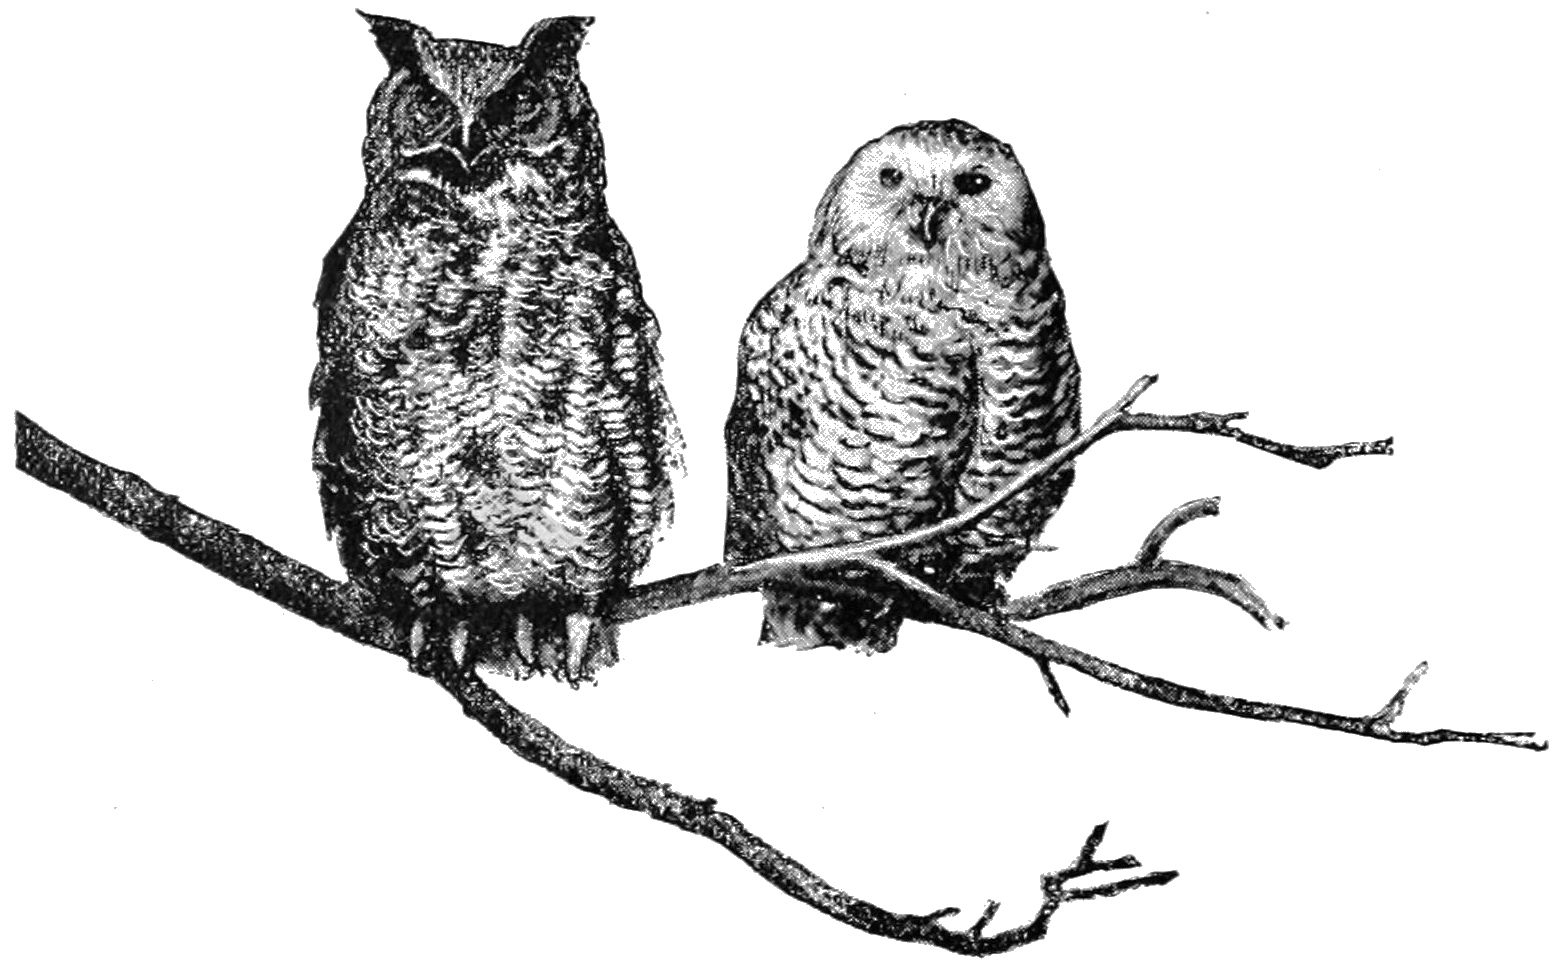 File:PSM V41 D334 Great horned and snowdon owls.jpg - Wikimedia Commons